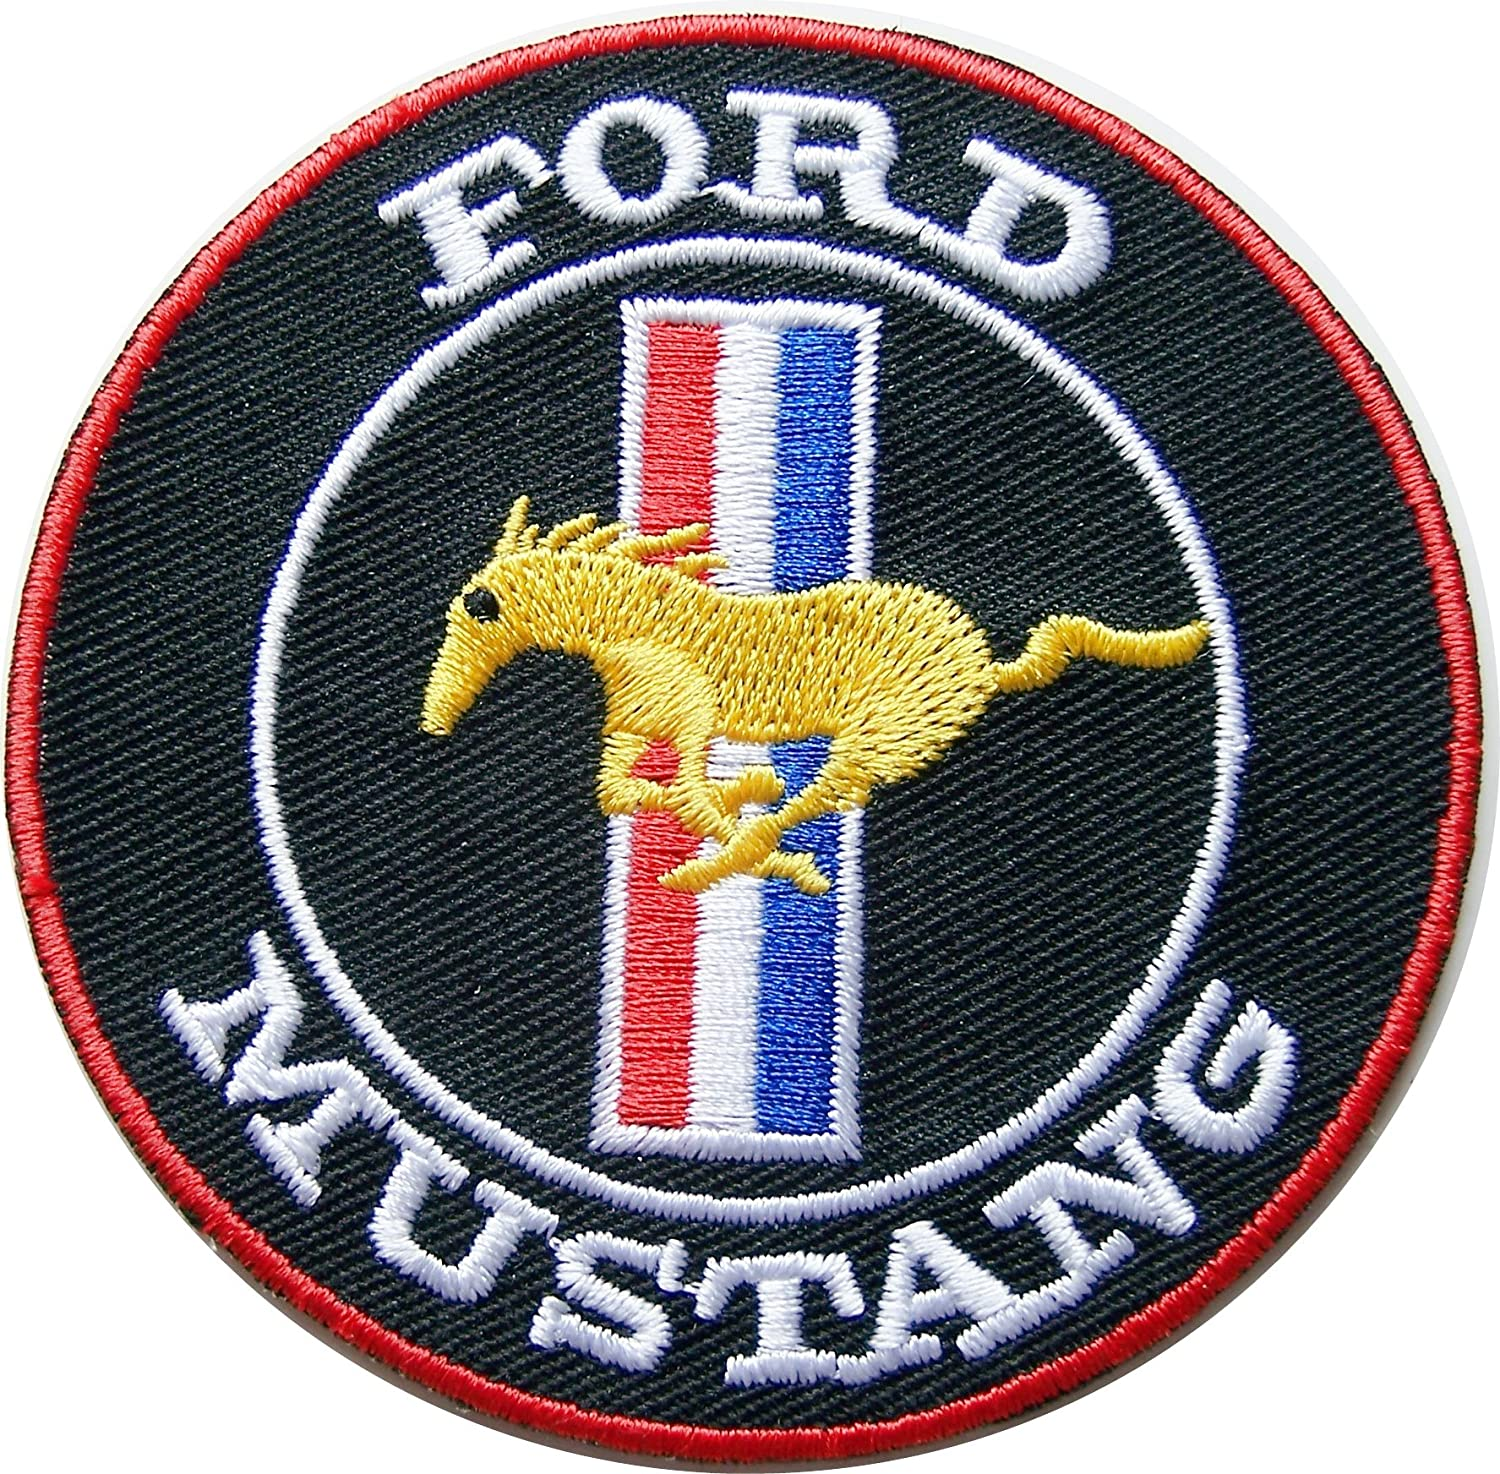 Ford SVT Racing Patch 4 inches Long by 2 inches High Embroidered Iron-On